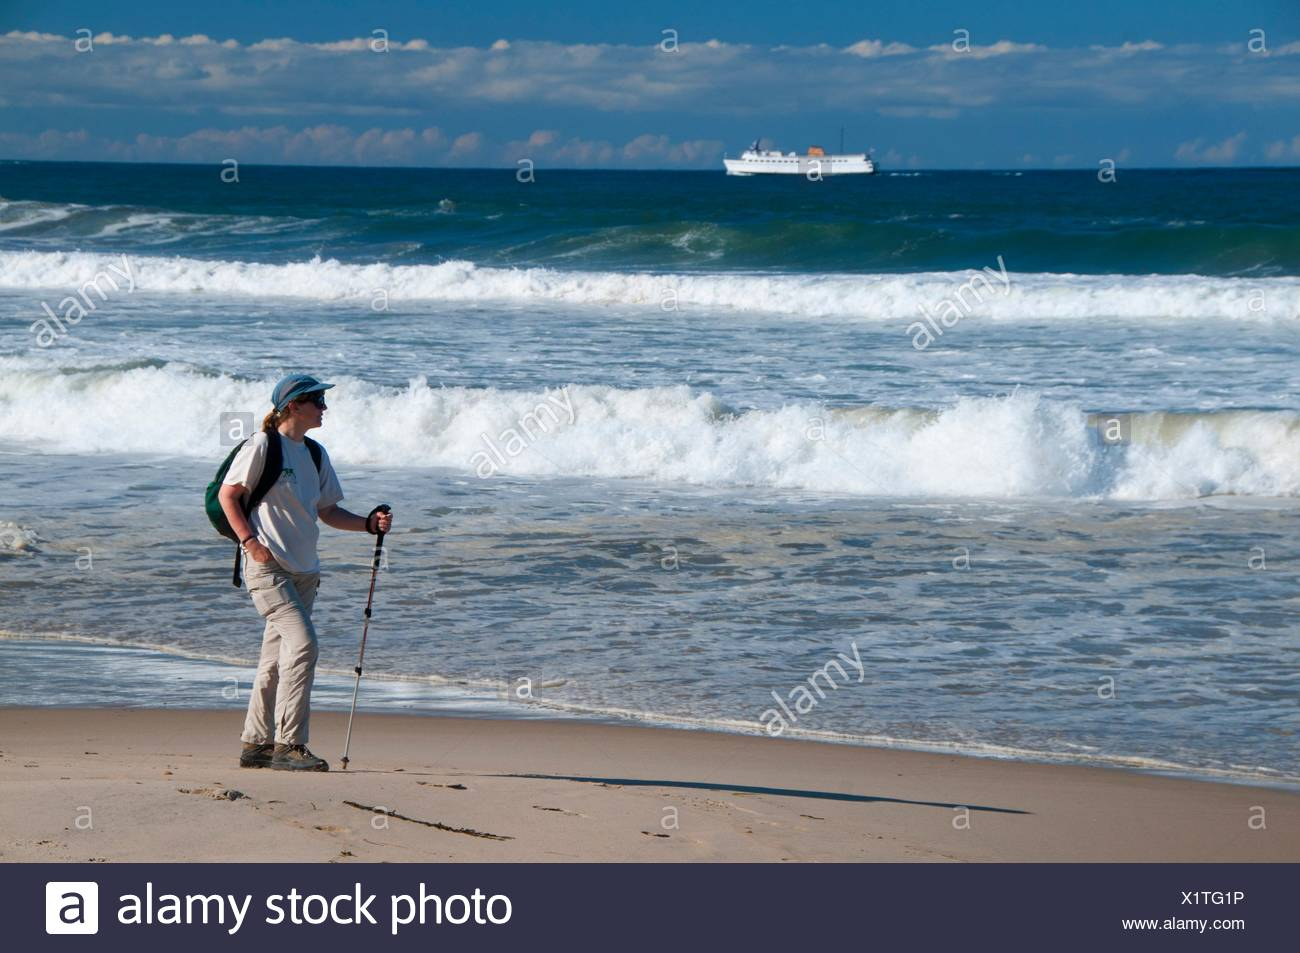 Crescent Beach, New Shoreham, Block Island, Rhode Island. - Stock Image